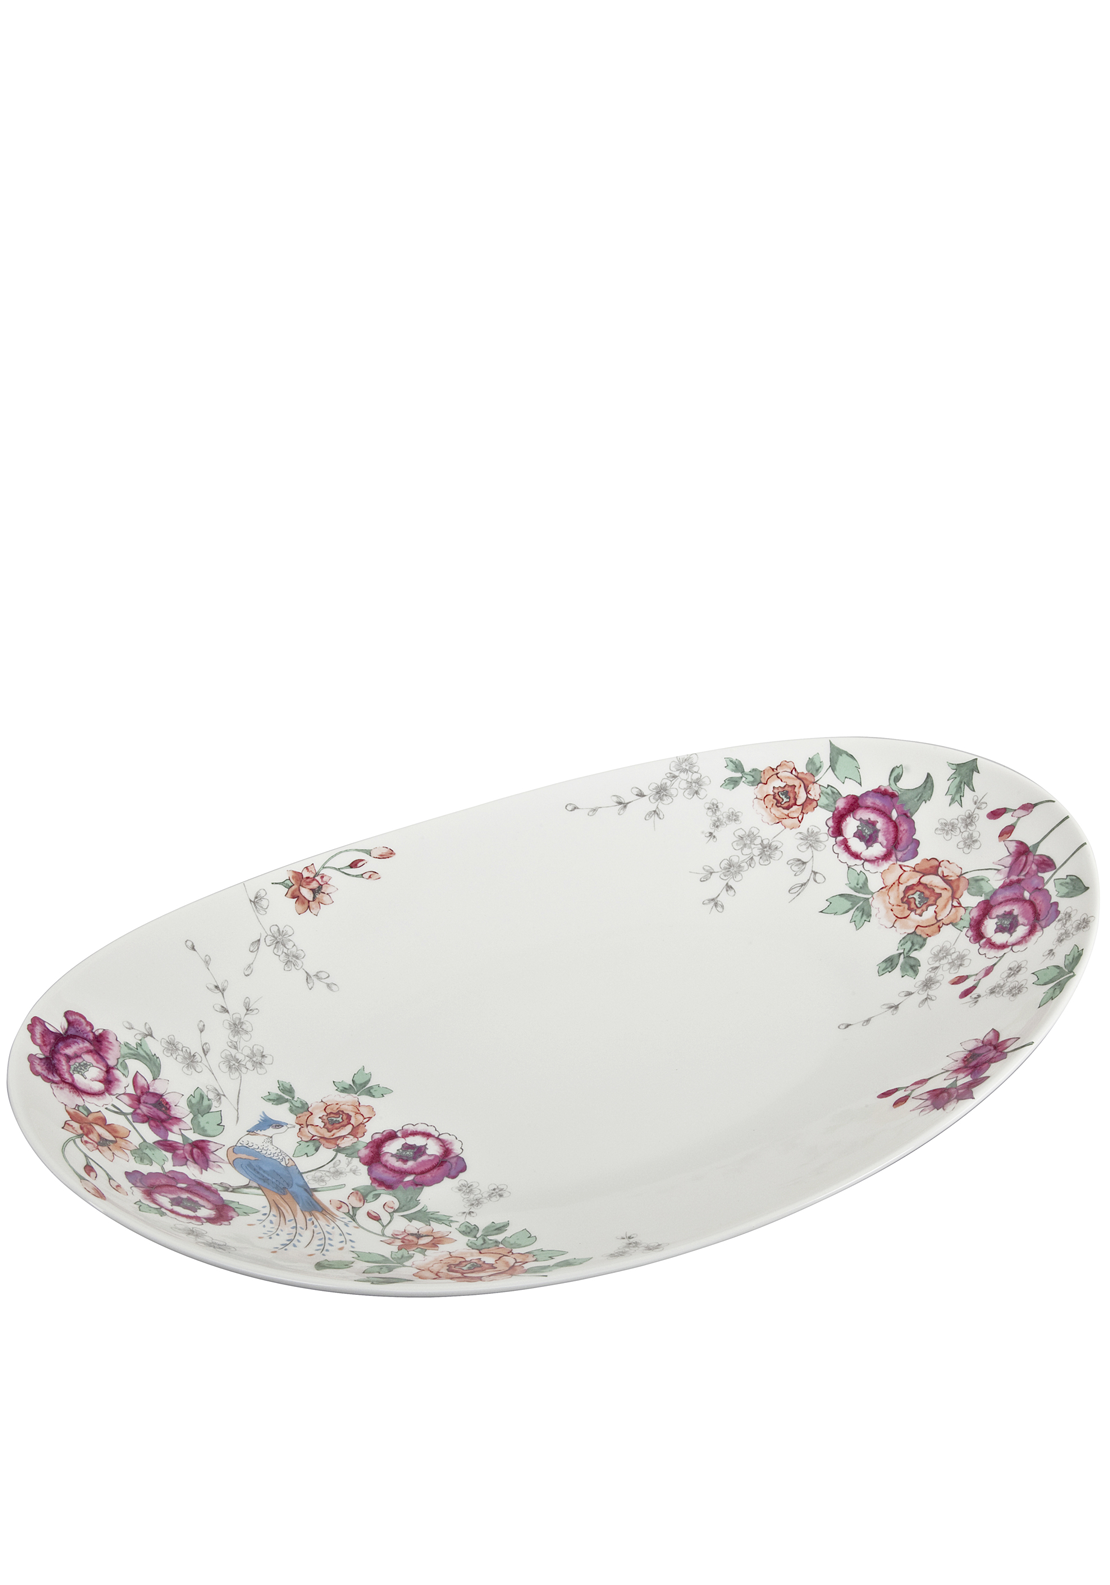 Denby Monsoon Home Kyoto Large Oval Platter, Cream